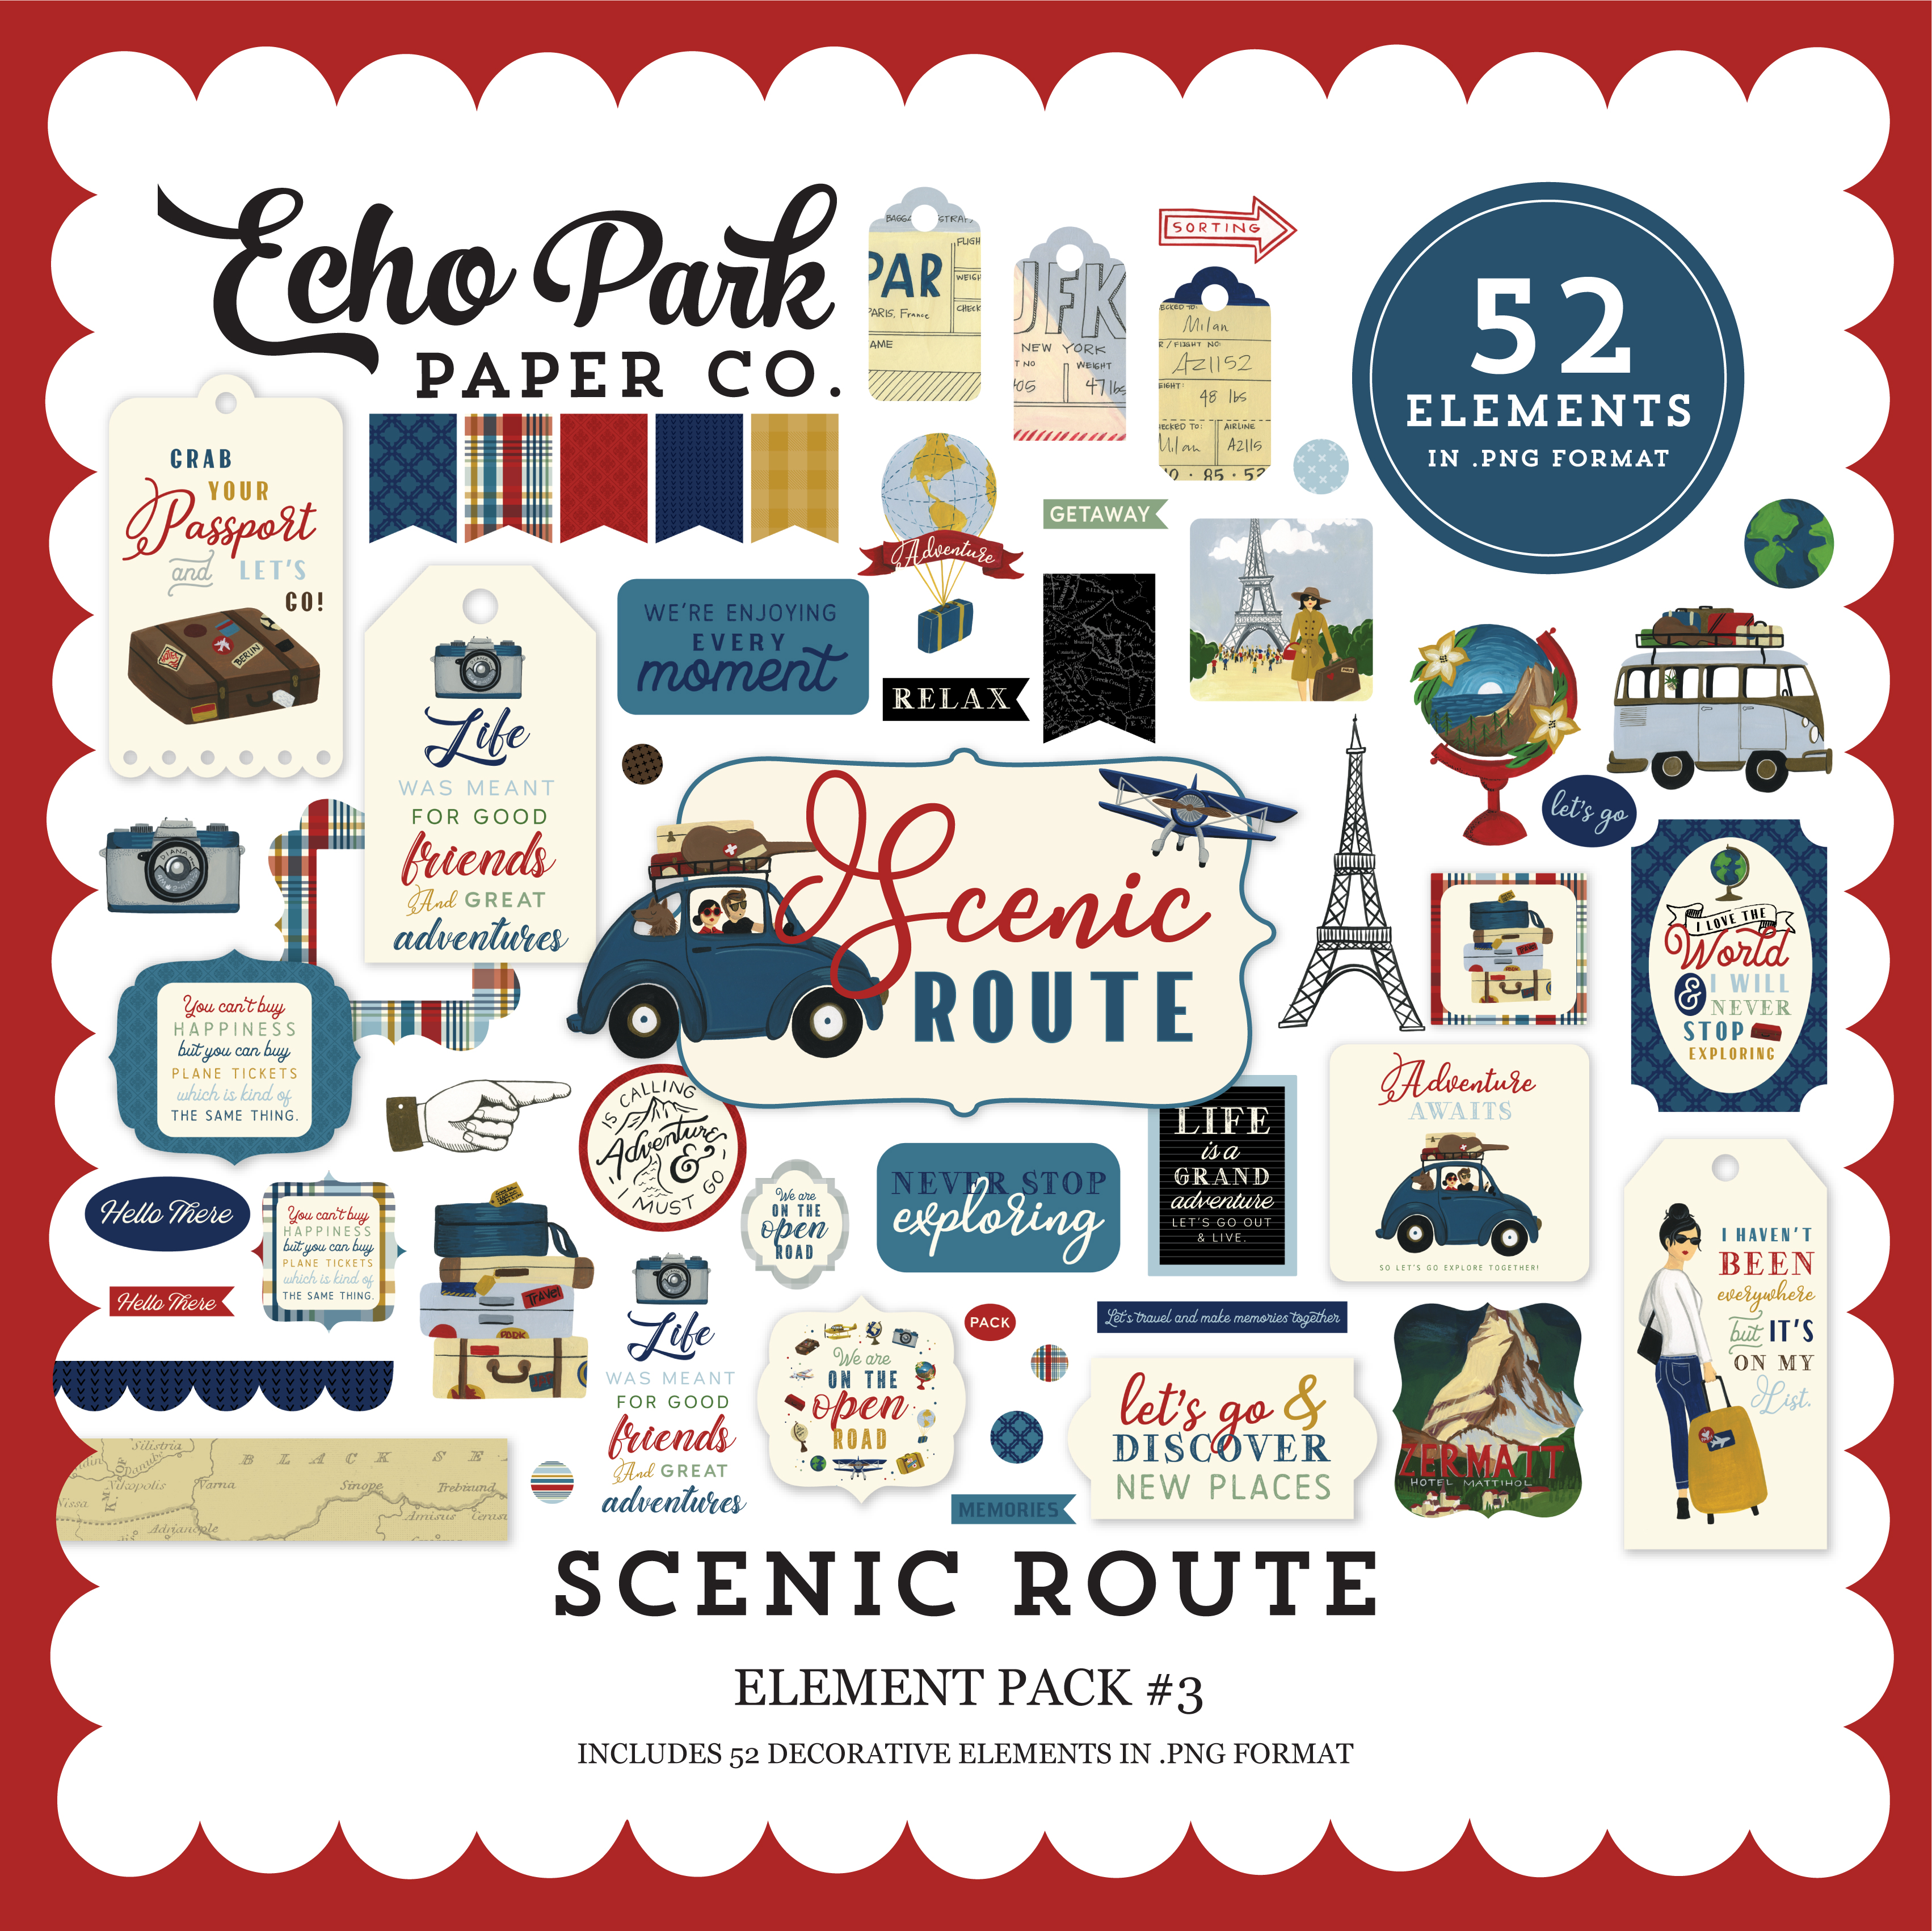 Scenic Route Element Pack #3